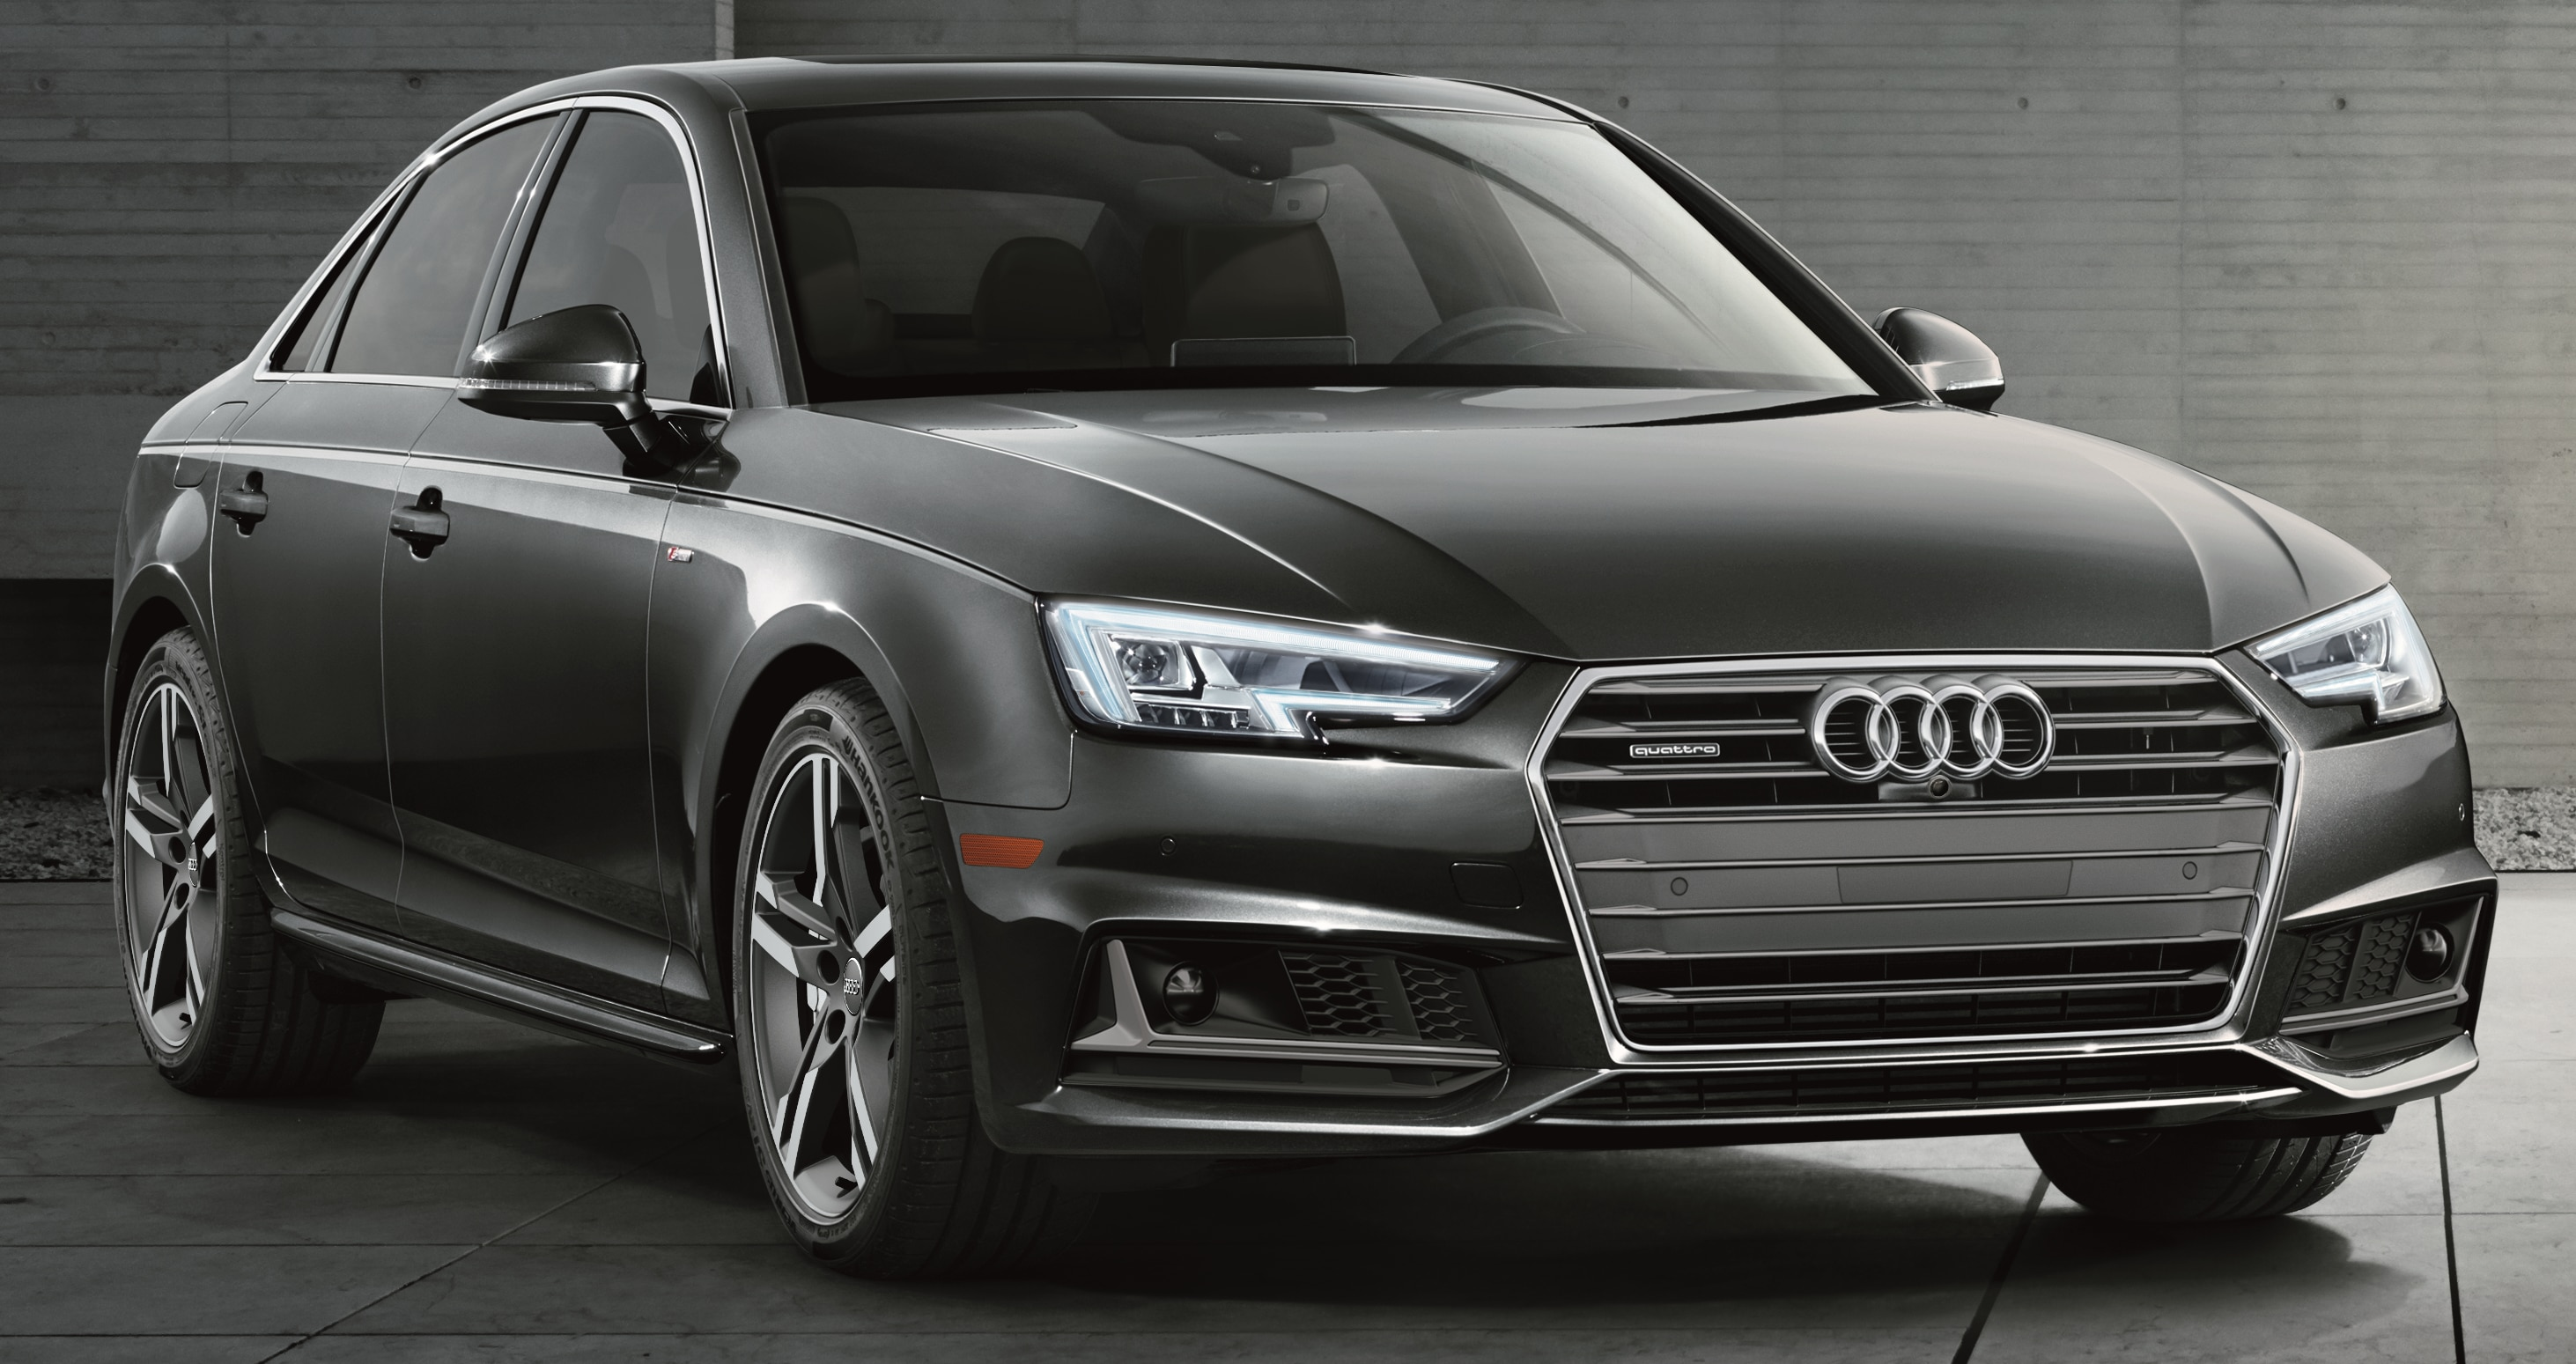 2018 Audi A4 for sale in Bellevue